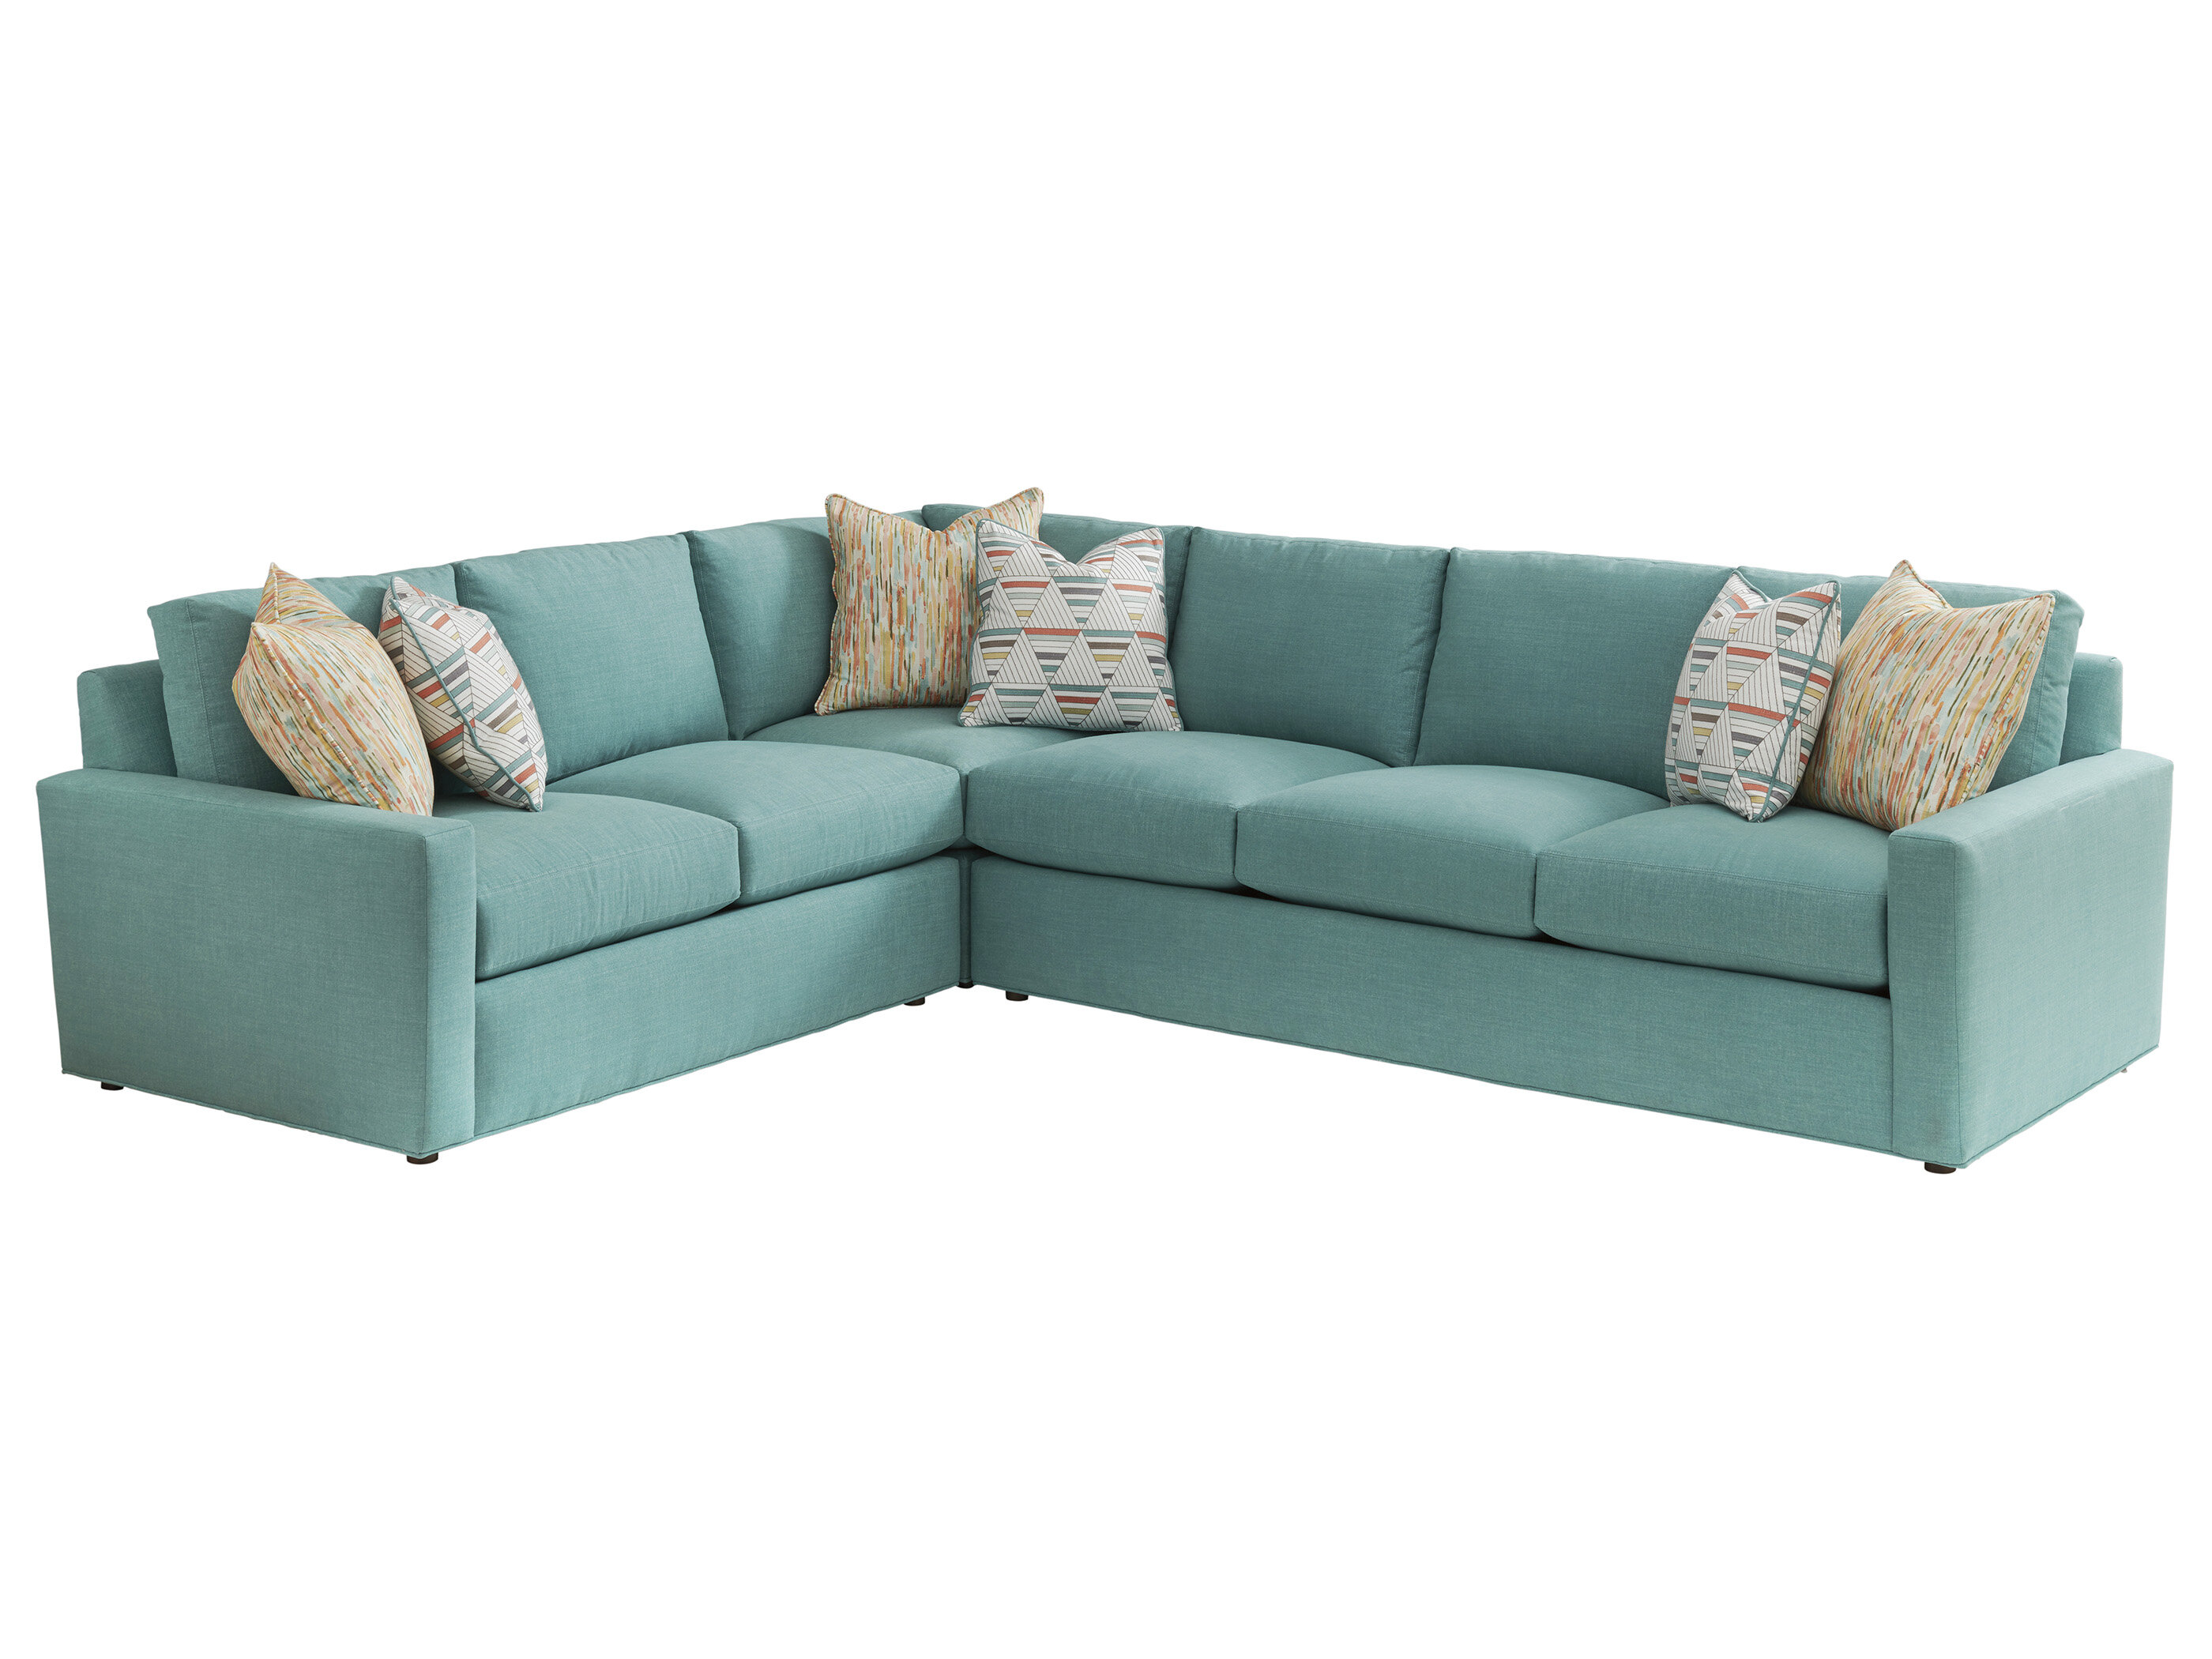 Tommy Bahama Home Revershores 120 Left Hand Facing Sectional Wayfair